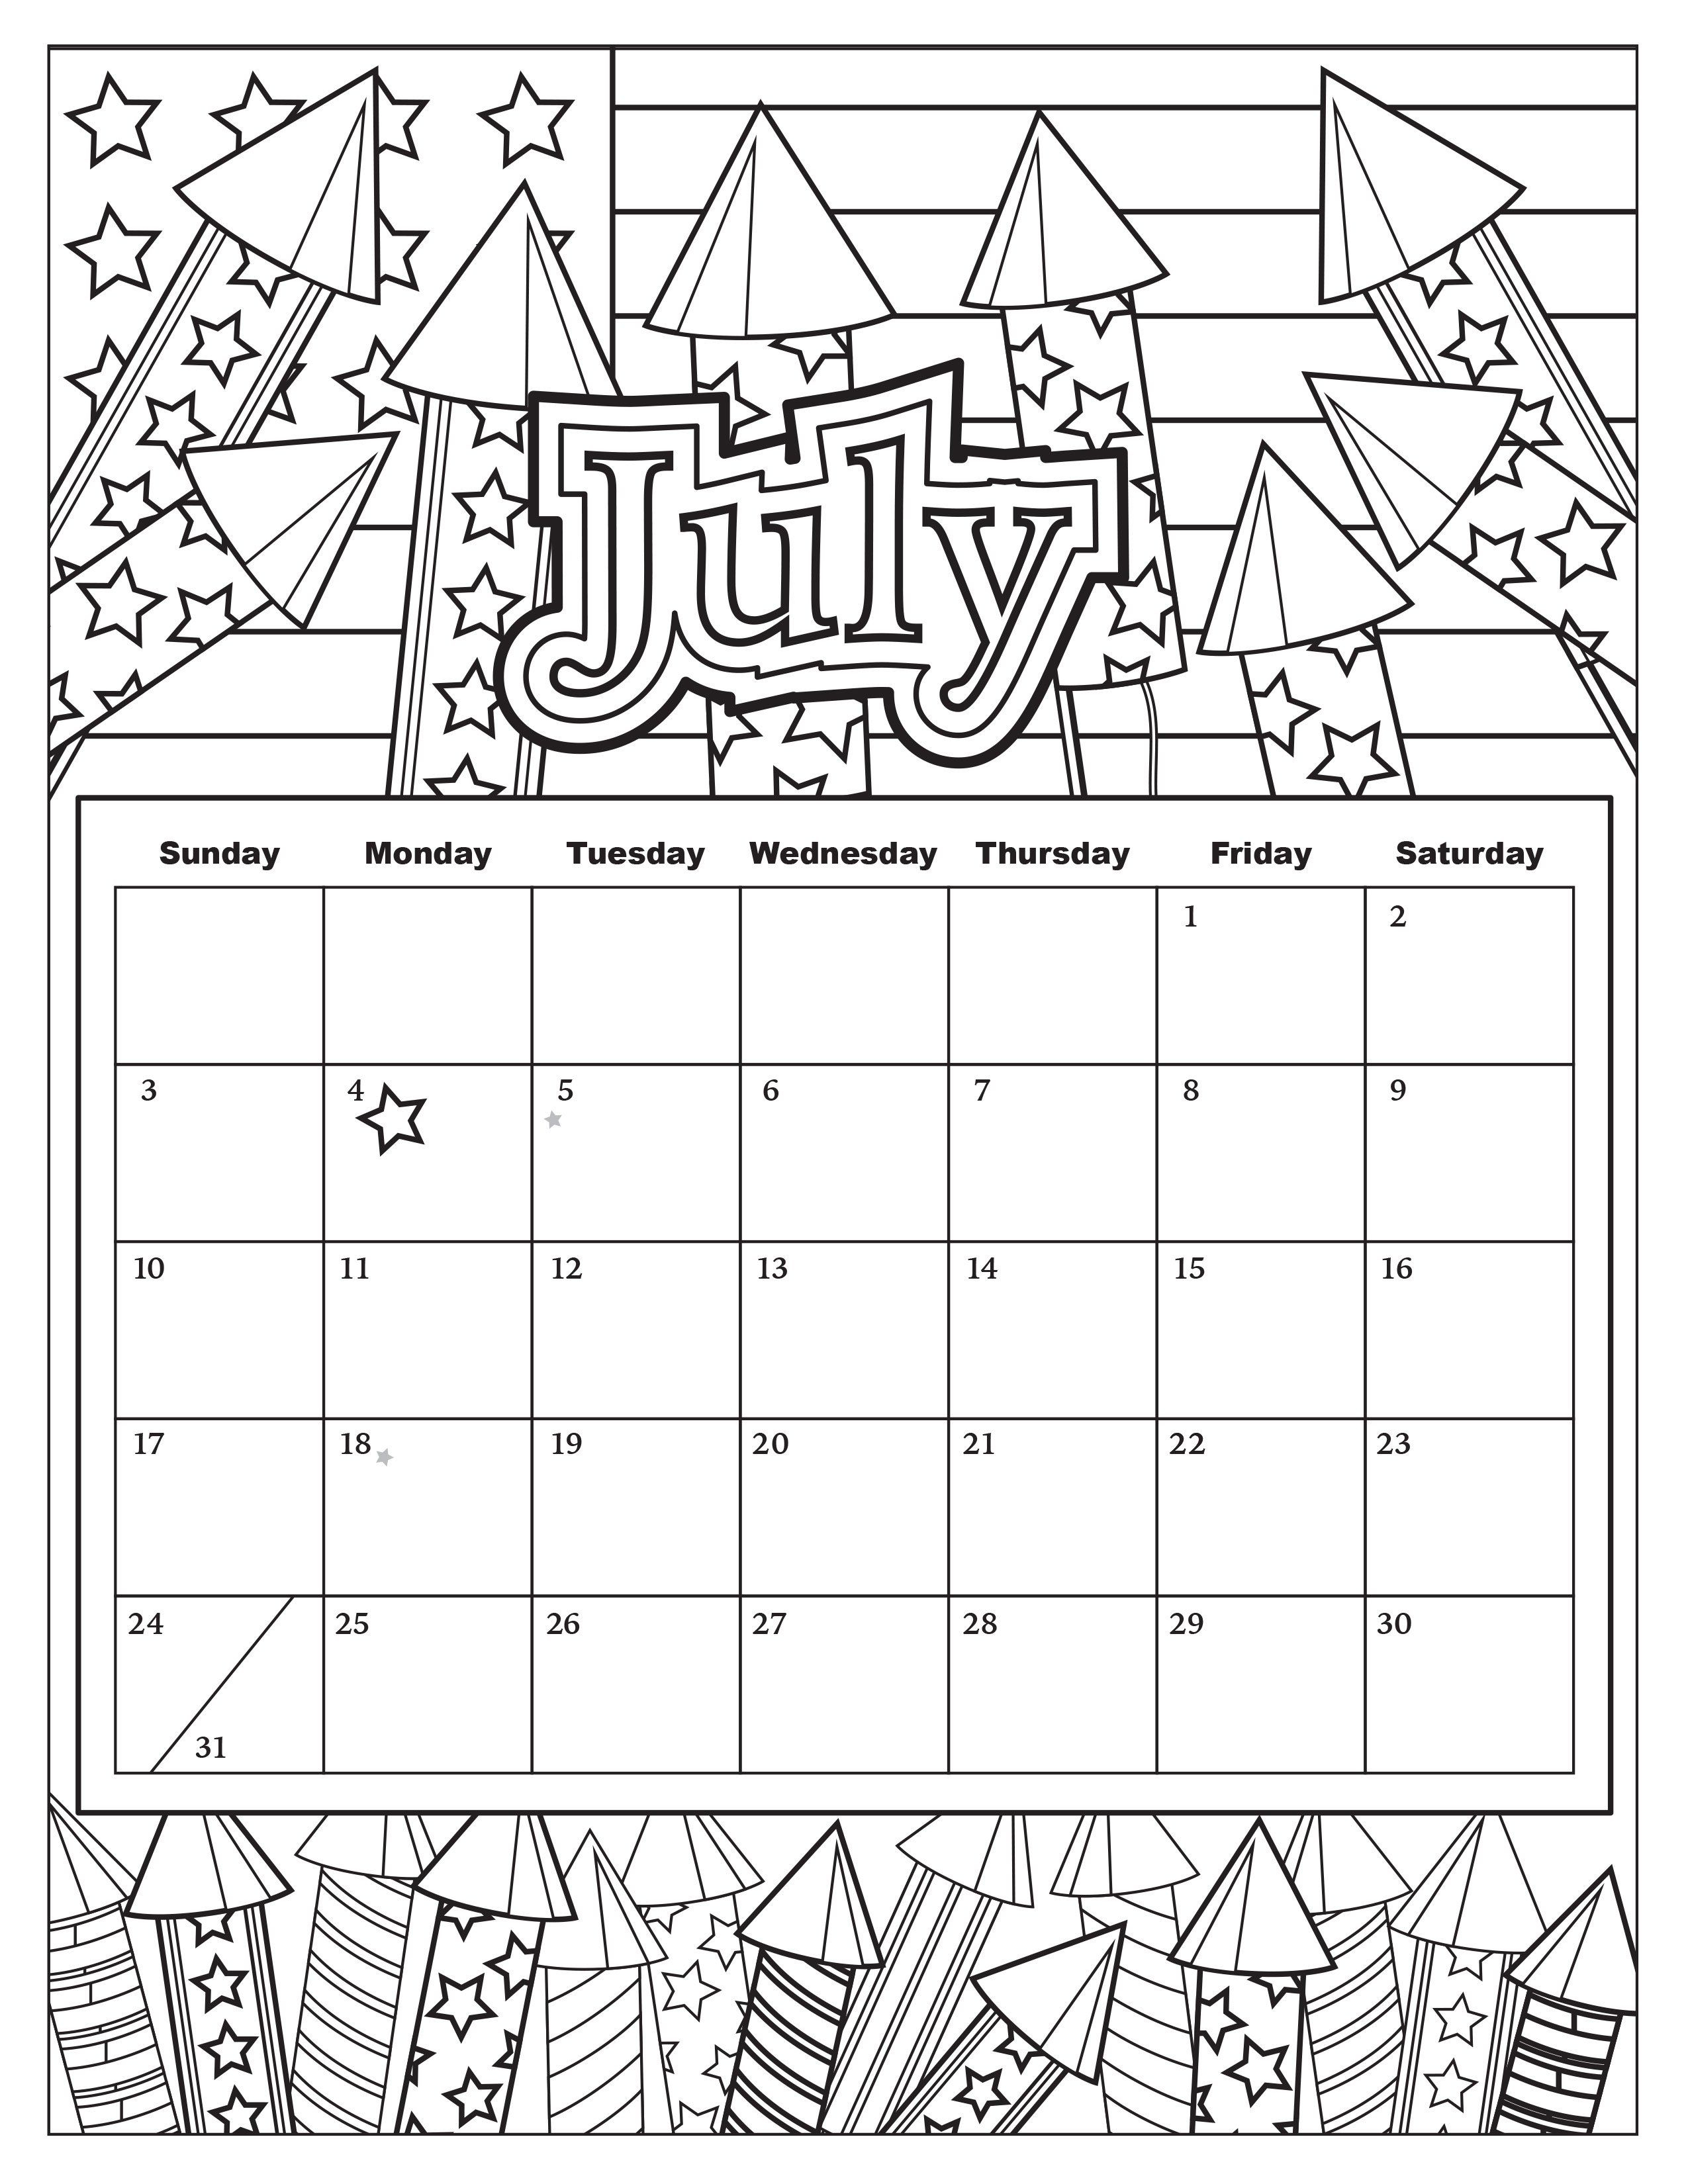 Free Download: Coloring Pages From Popular Adult Coloring Books throughout Coloring Pages October Calendar 2019 Adults